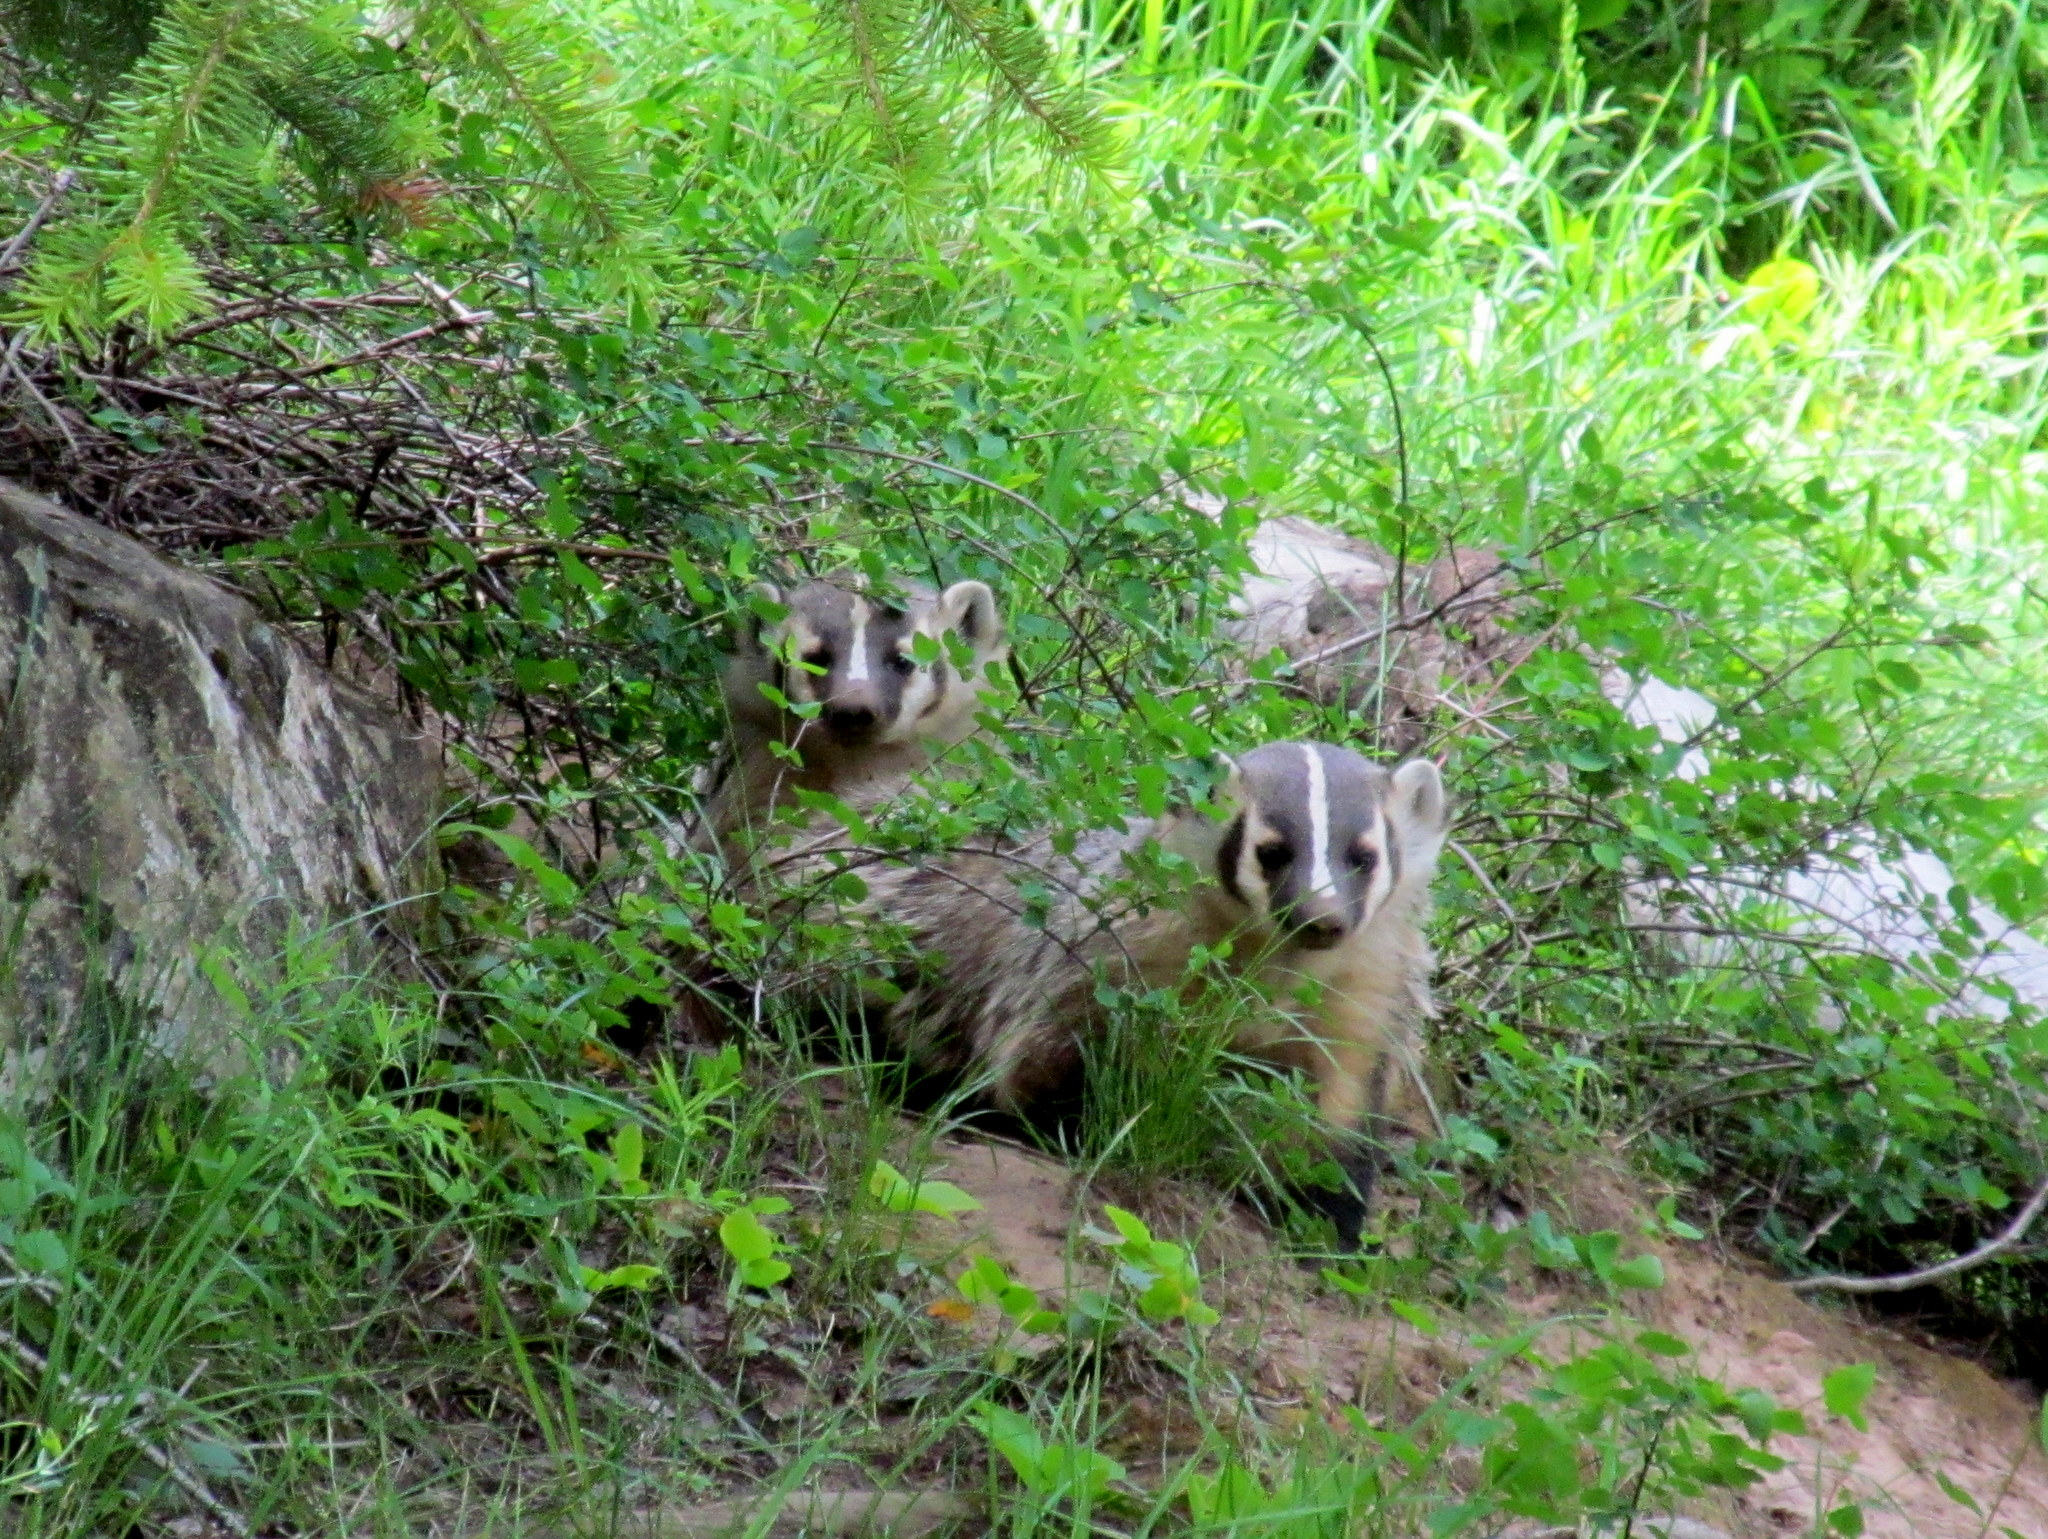 Photo: A pair of American badgers (Taxidea taxus)